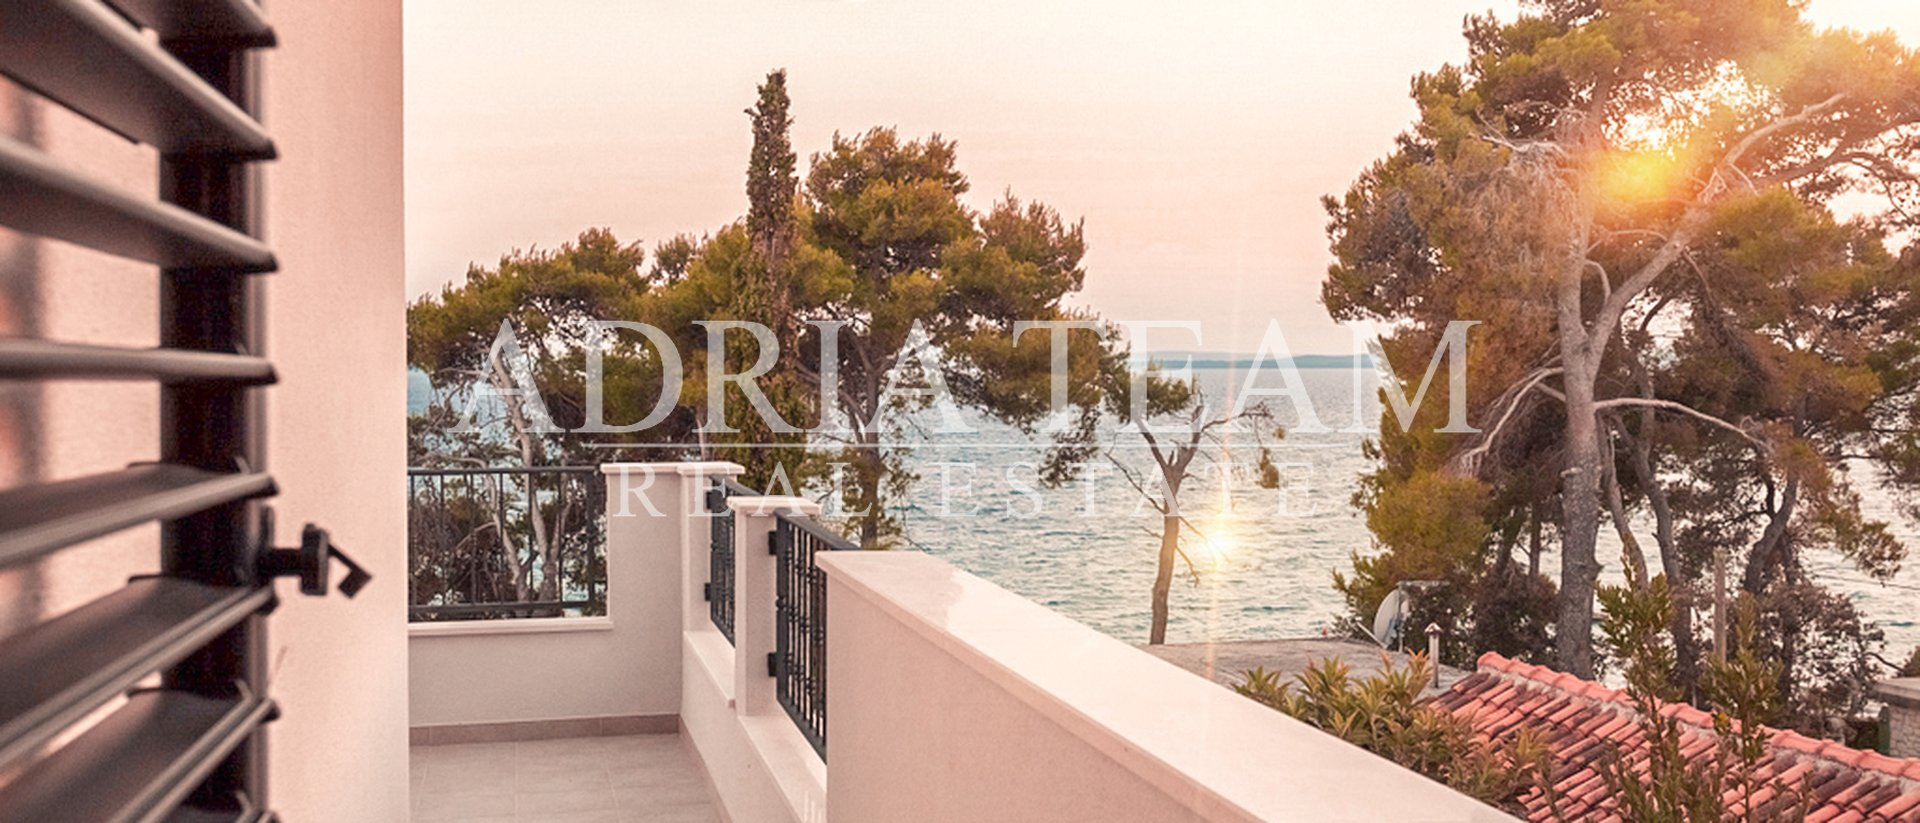 LUXURY MODERN VILLA WITH POOL - 20 M FROM THE BEACH